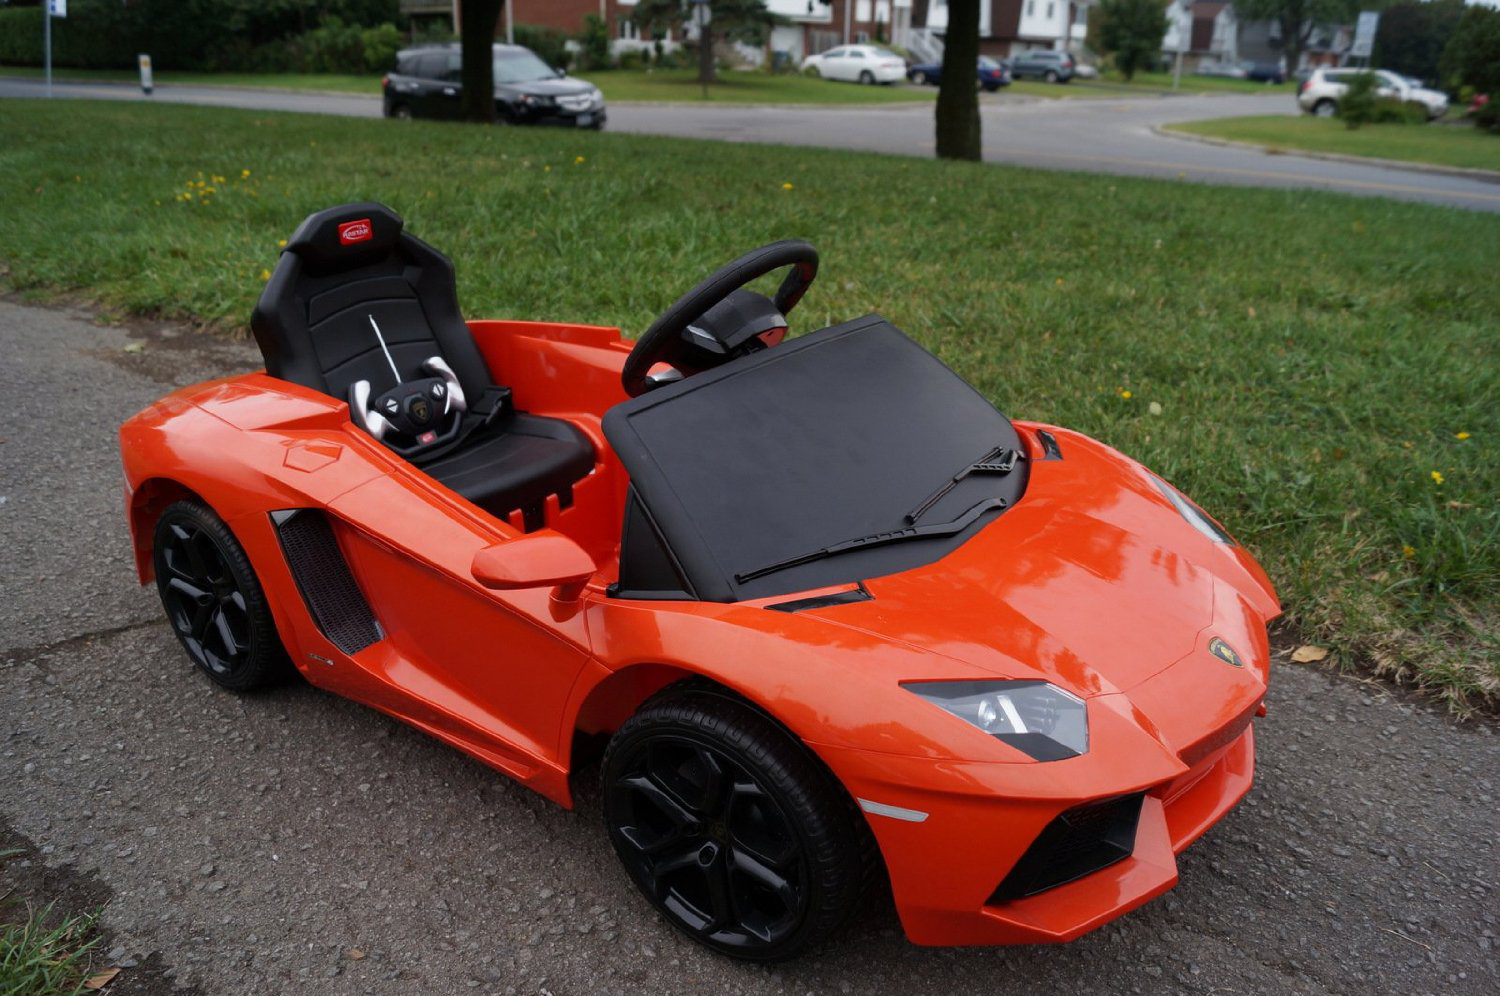 Lamborghini Lp700 Aventador 6v Electric Children S Battery Powered Under Licensed Ride On Car